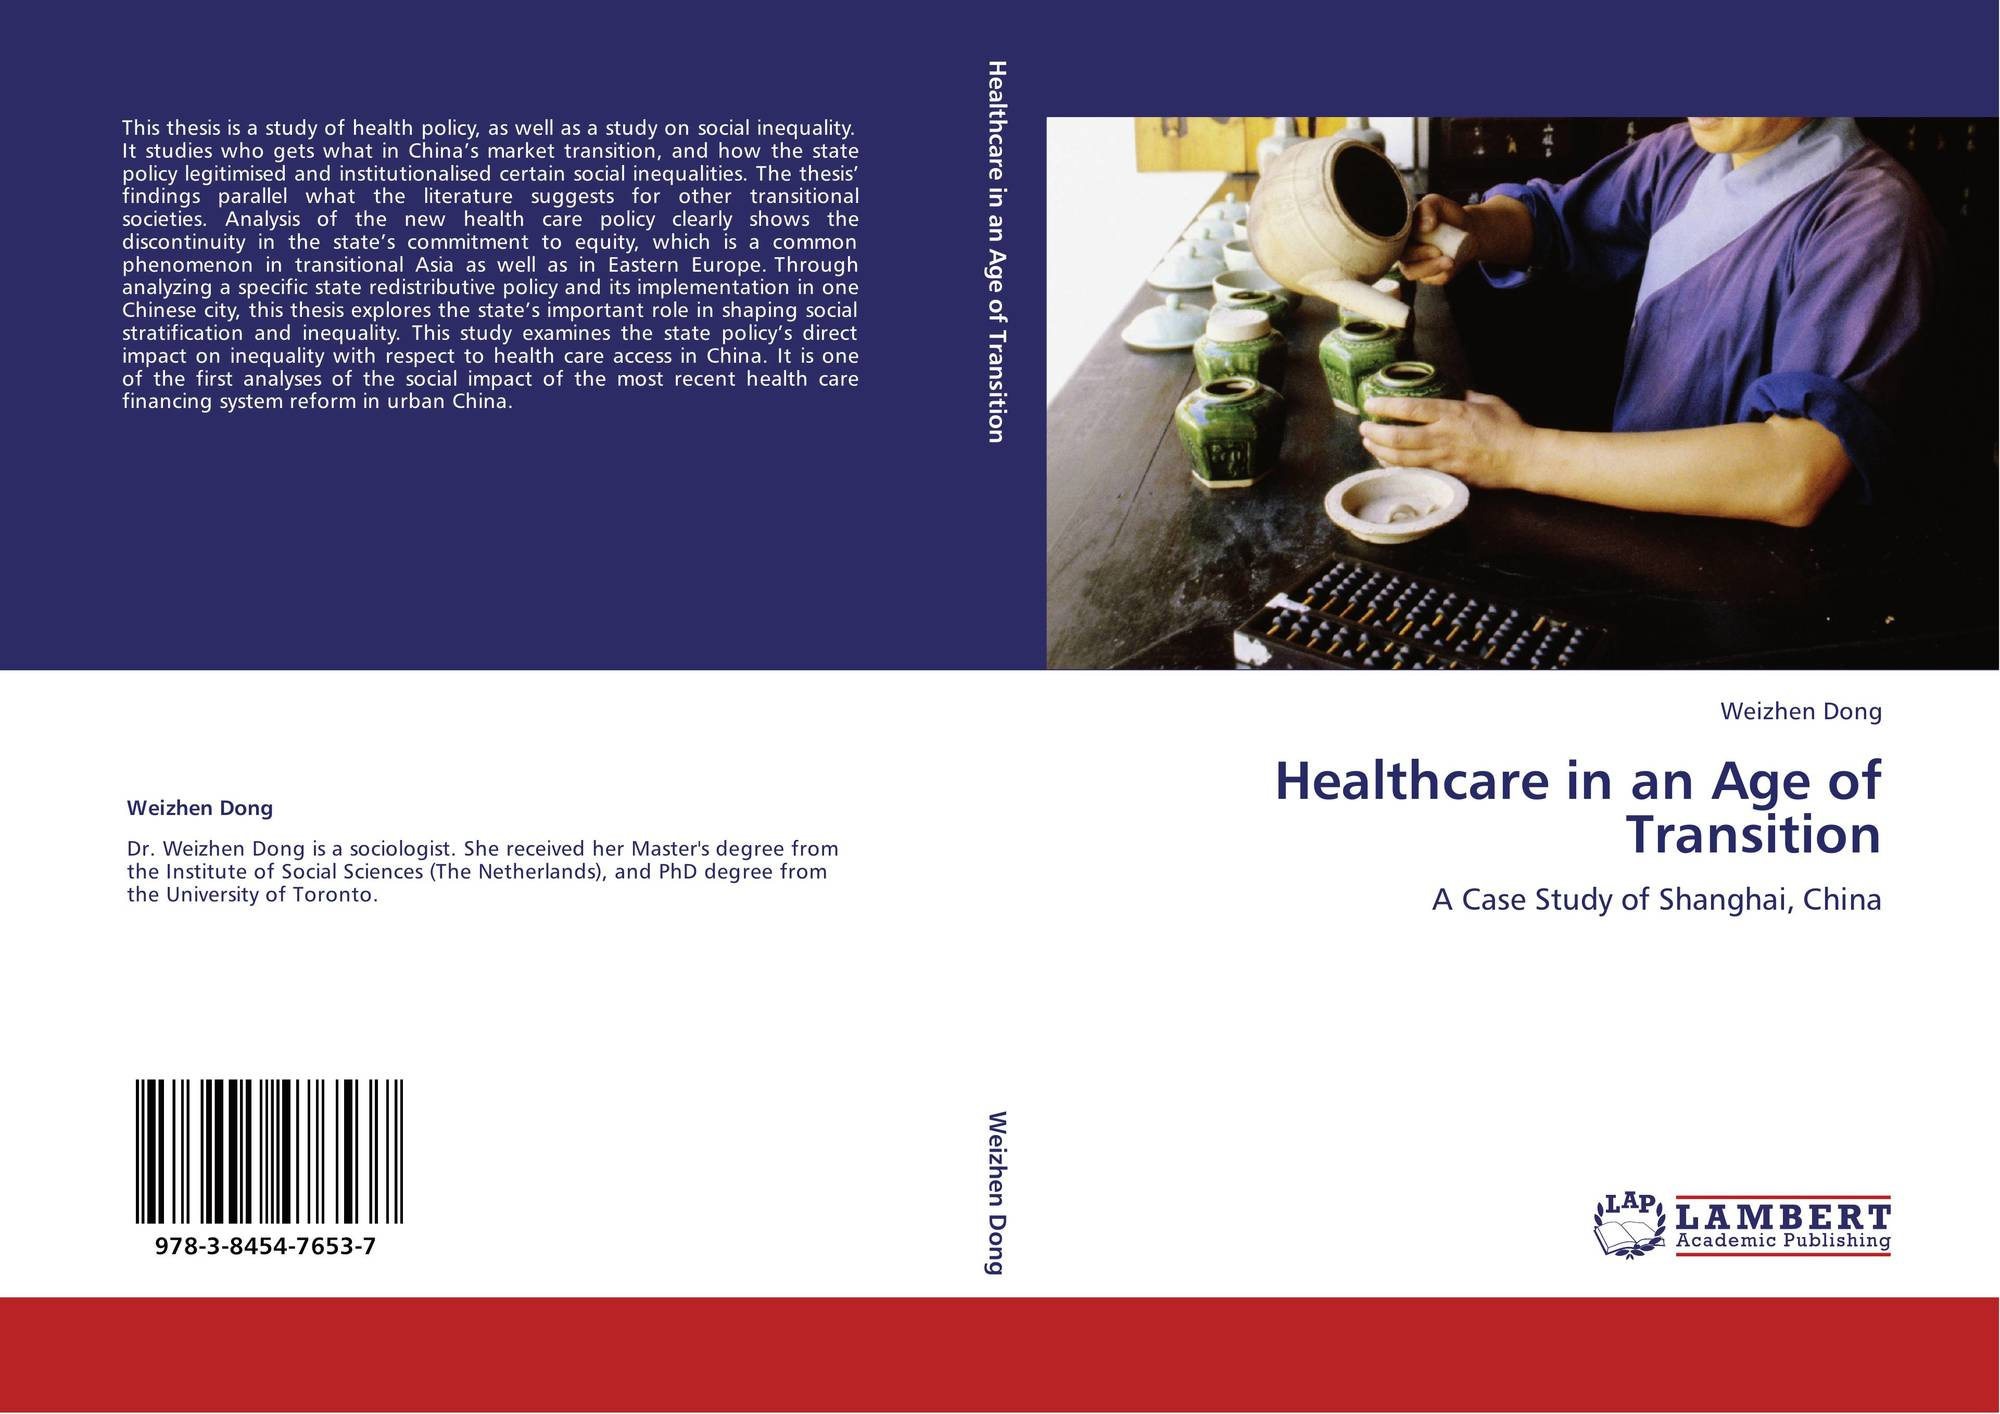 case studies in healthcare finance